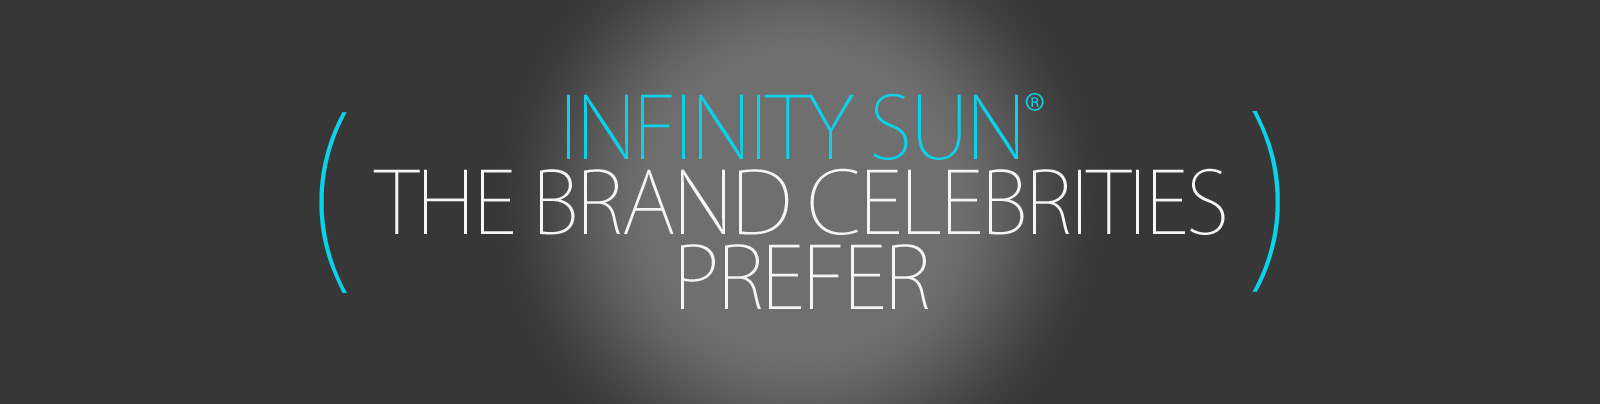 Celebrity Spray Tans Airbrush Tanning Reviews Infinity Sun